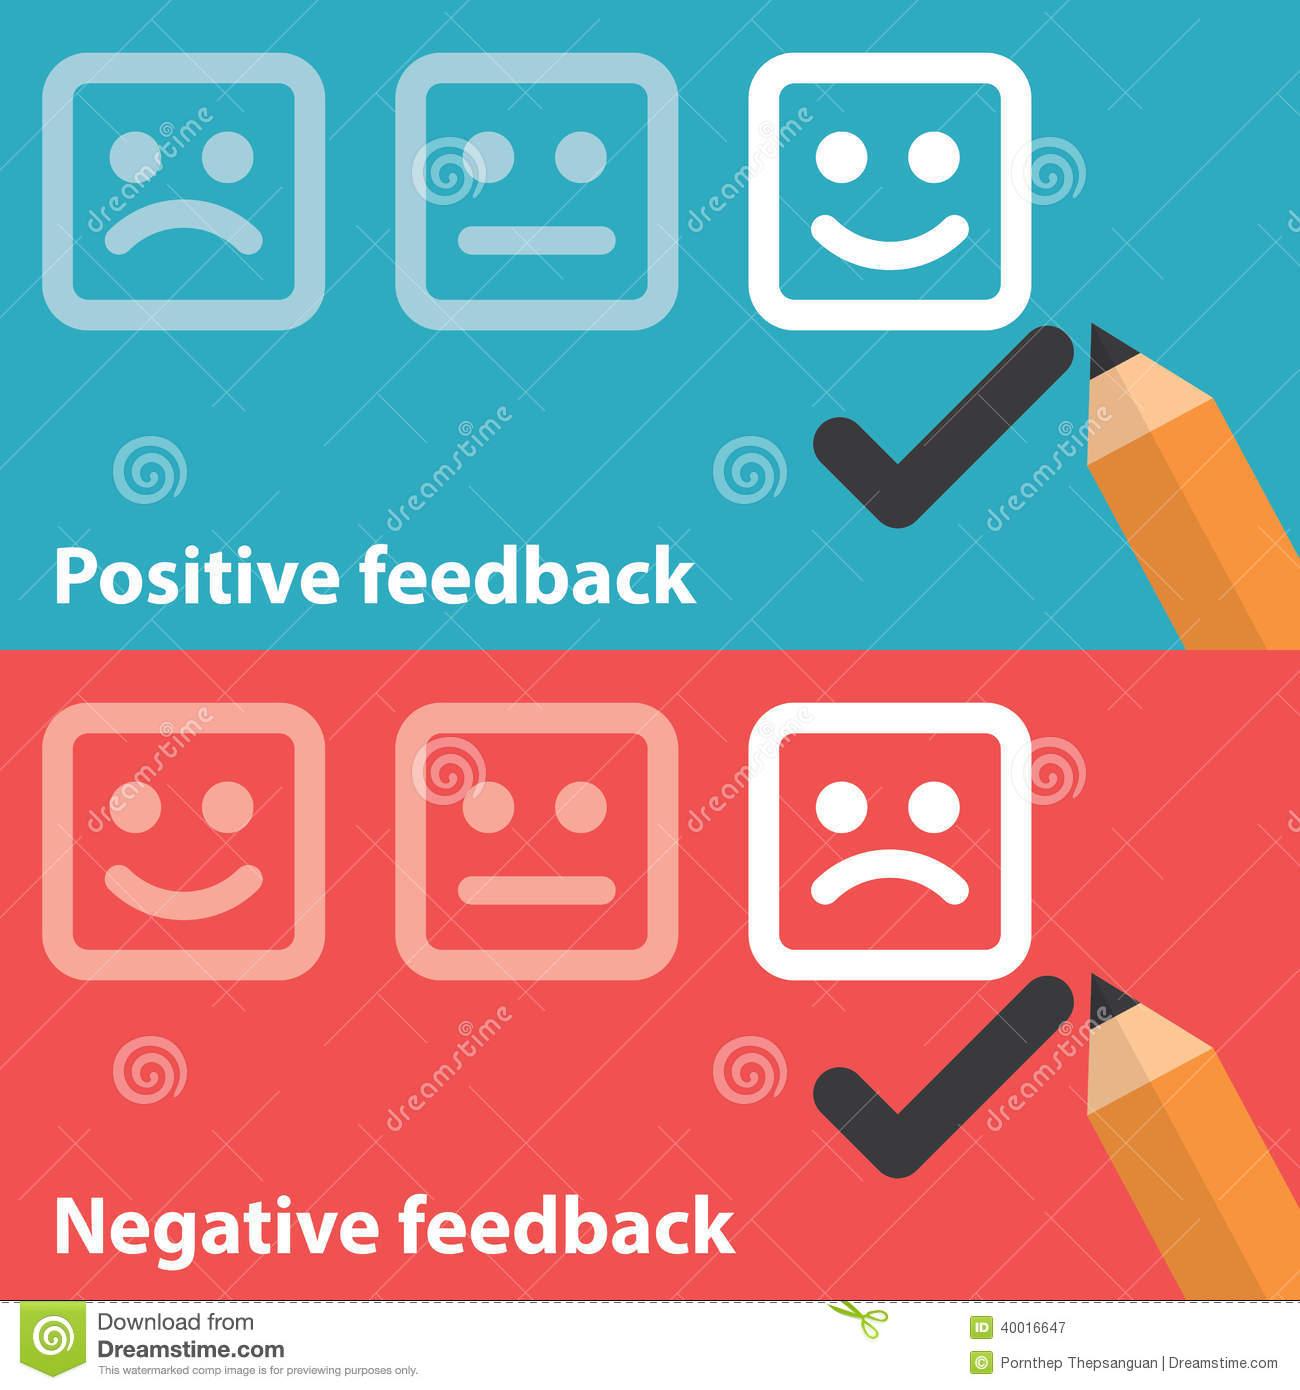 how to take positive feedback